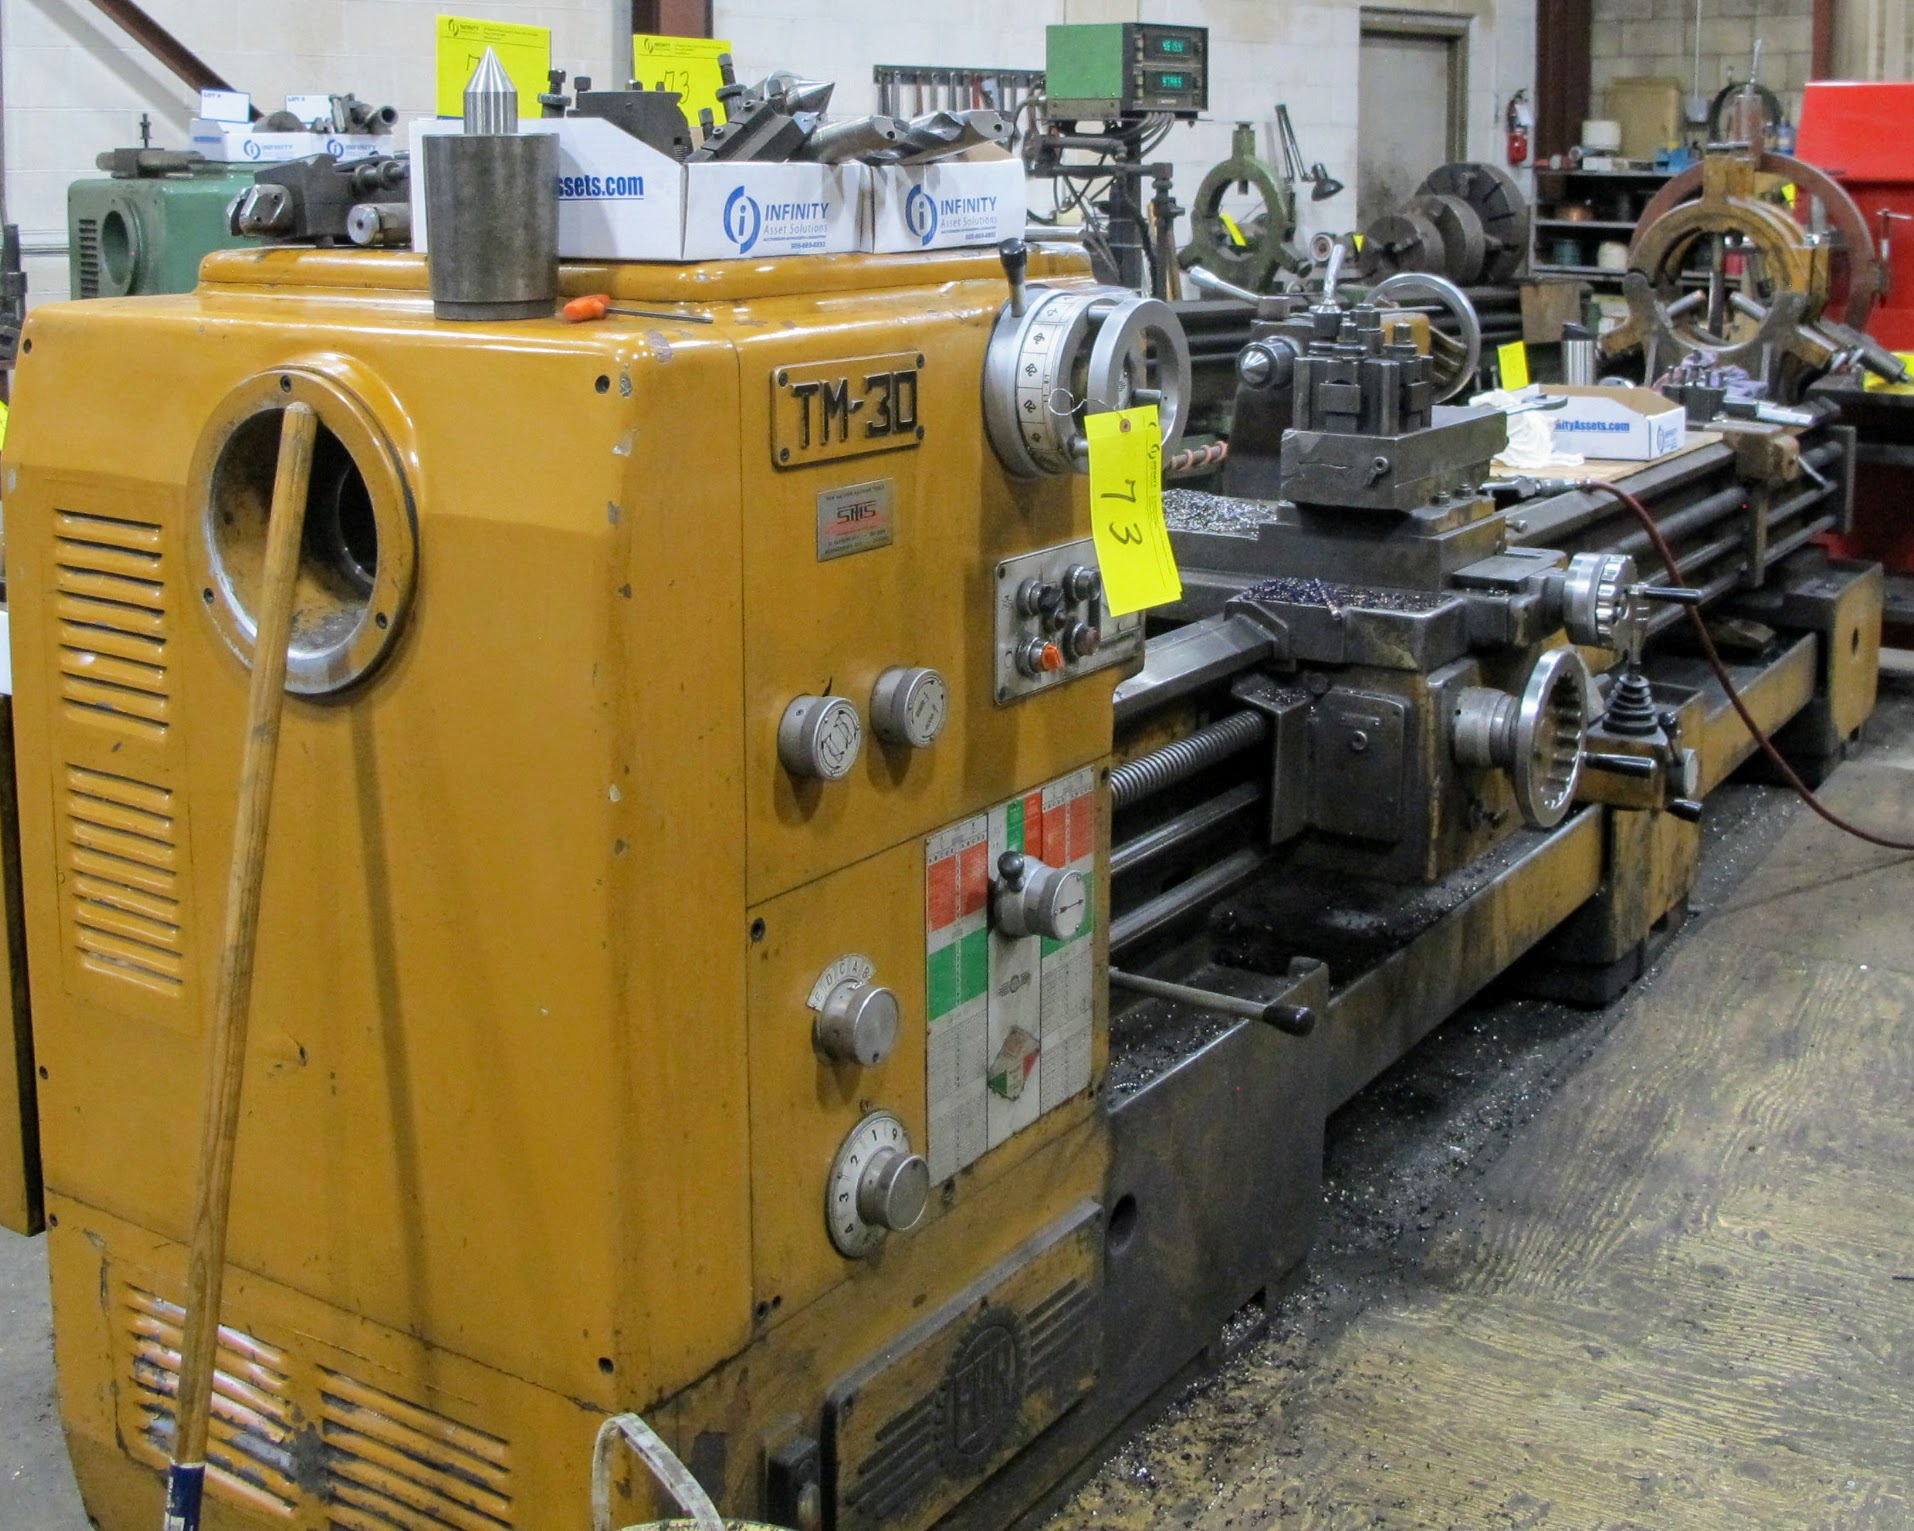 """PBR TM-30 LATHE, 2-AXIS DRO, 12"""" 3-JAW CHUCK, 12' BED, 15 - 1,500 RPM, QUICK CHANGE TOOL HOLDER, - Image 2 of 6"""